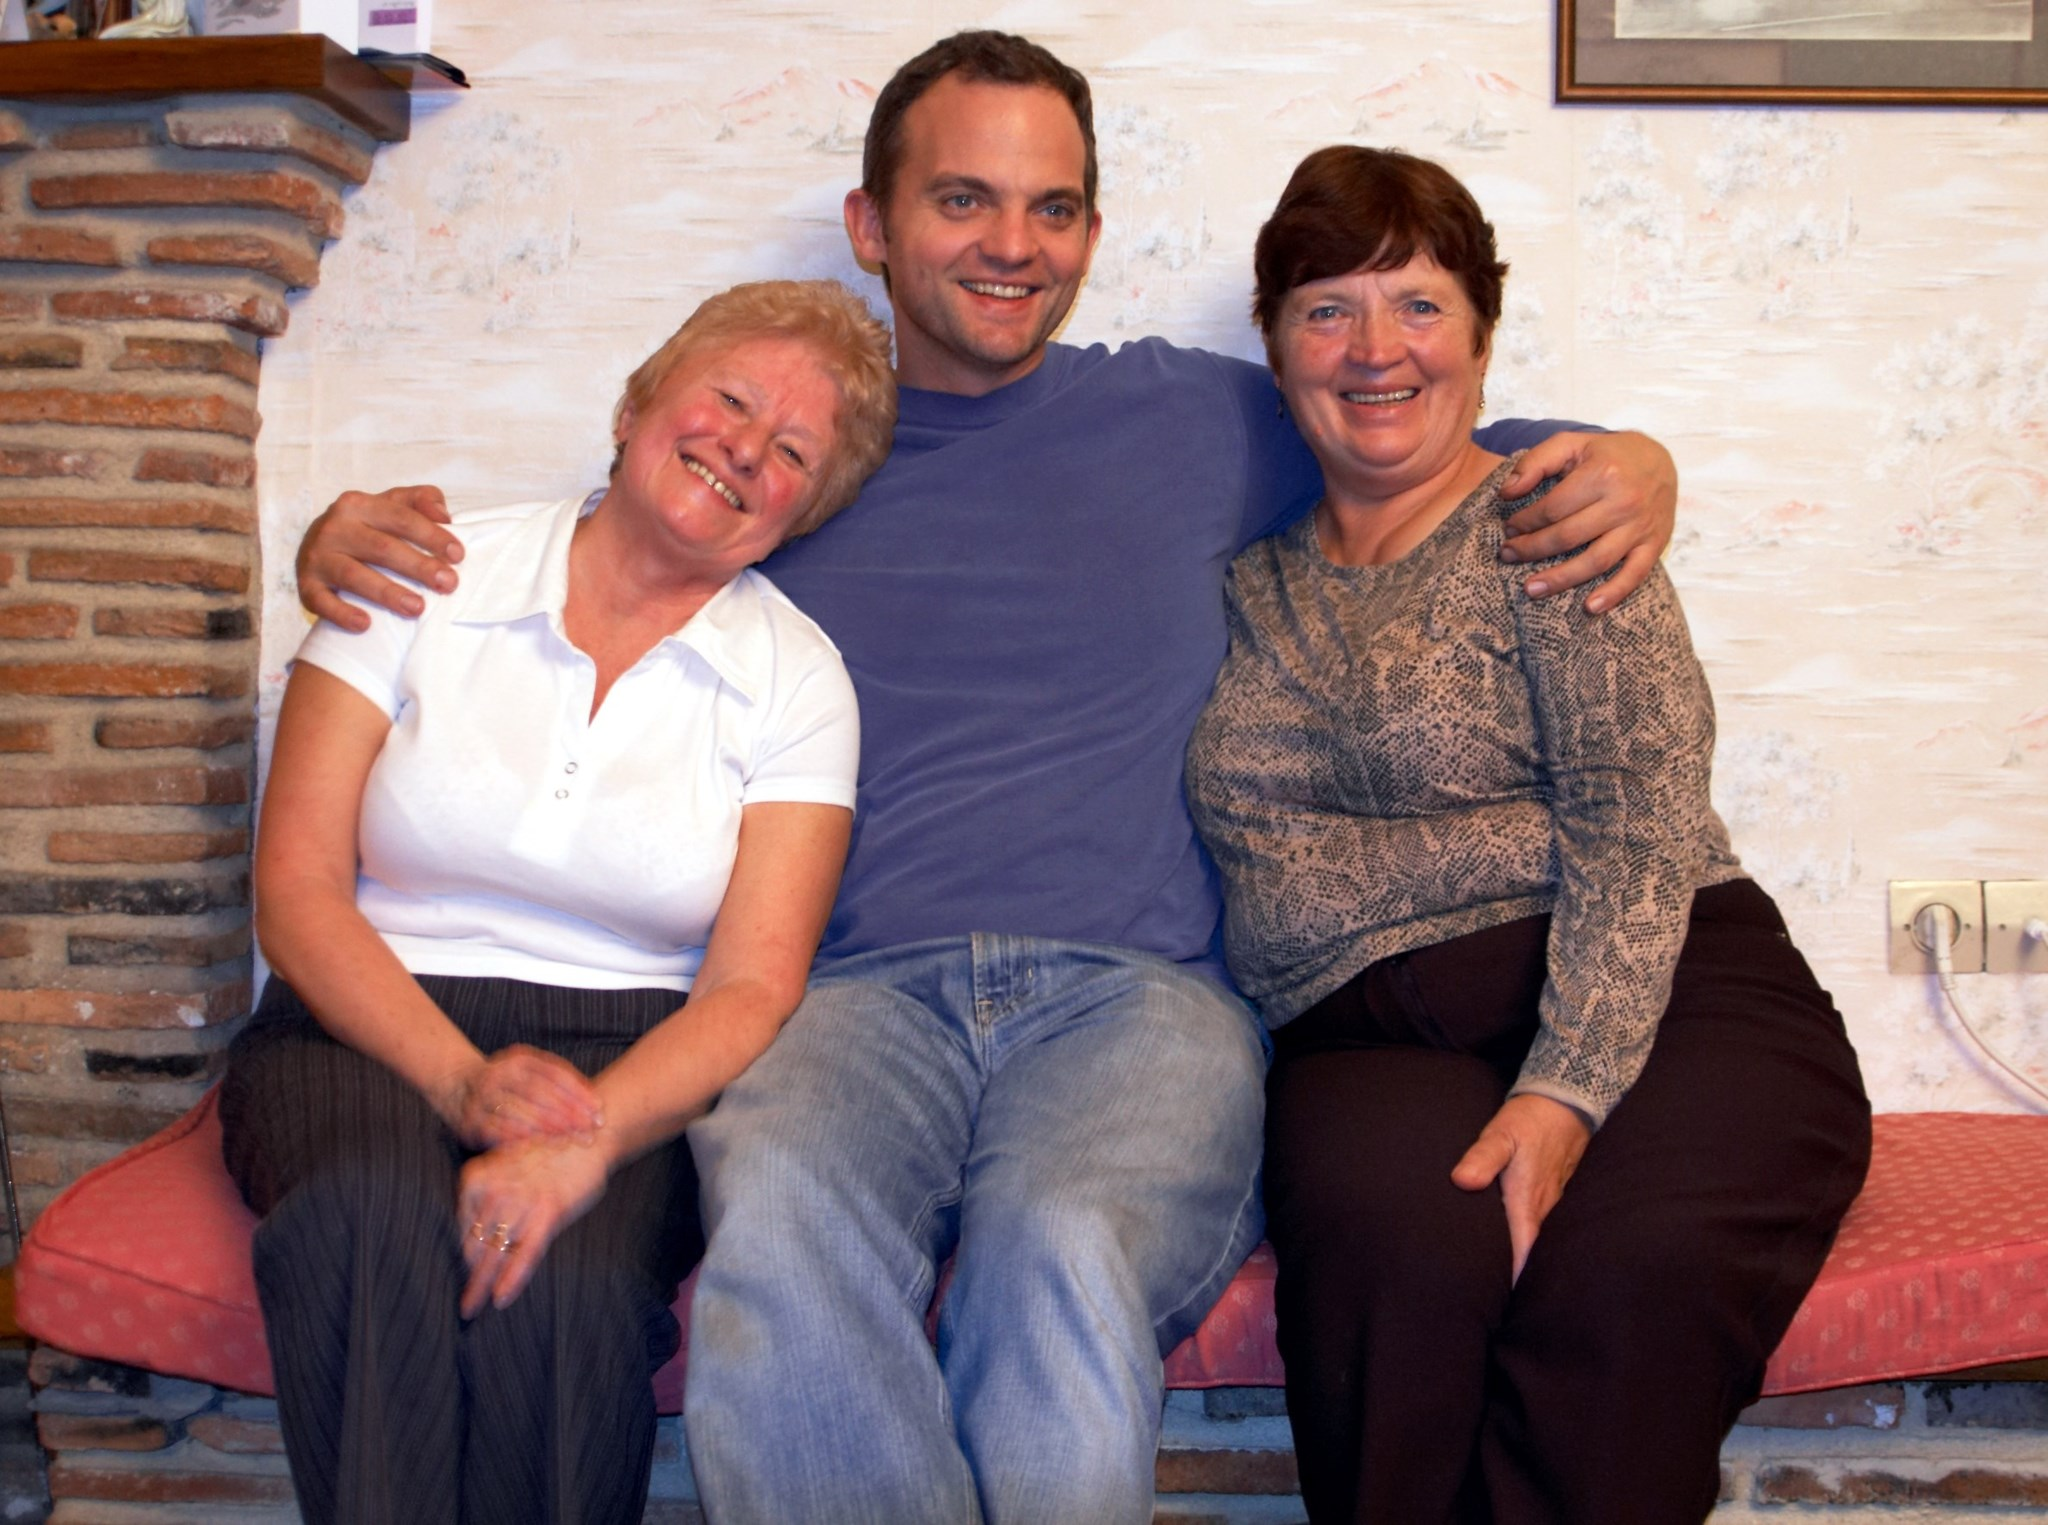 Mum with Pam and Steve, same holiday